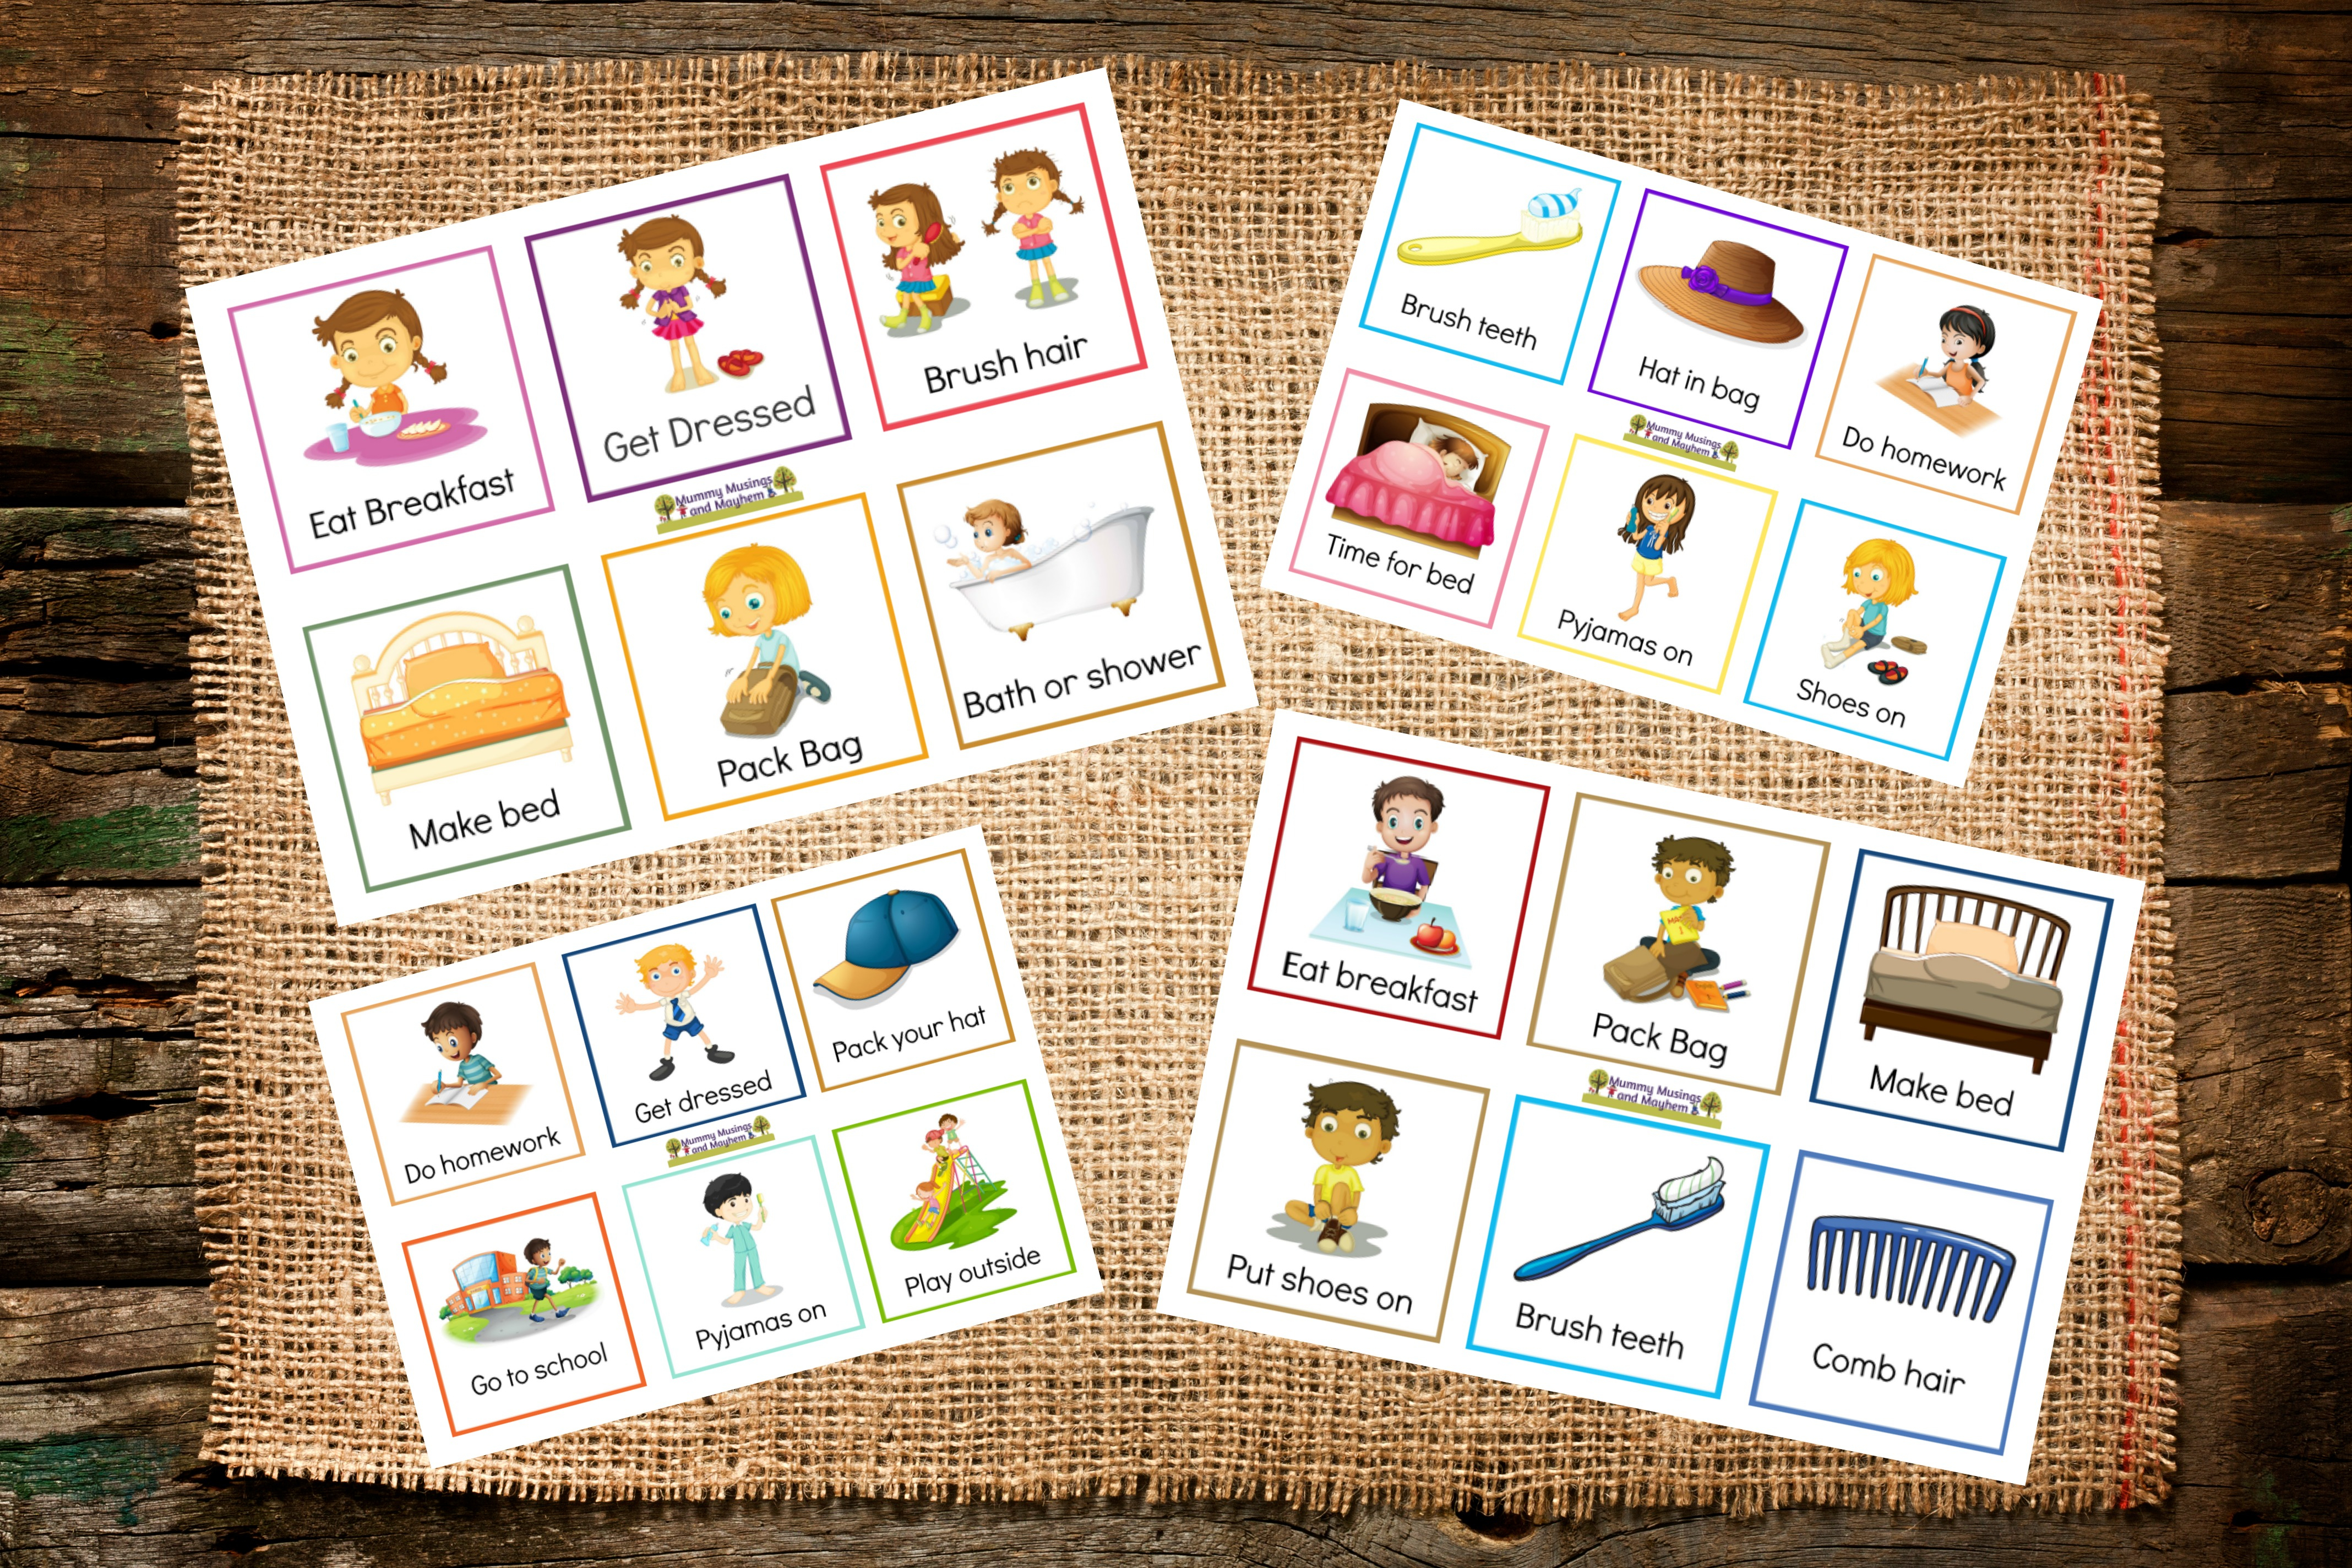 Back To School Routines - Free Printable Cards To Make It Easier - Free Printable Picture Schedule Cards